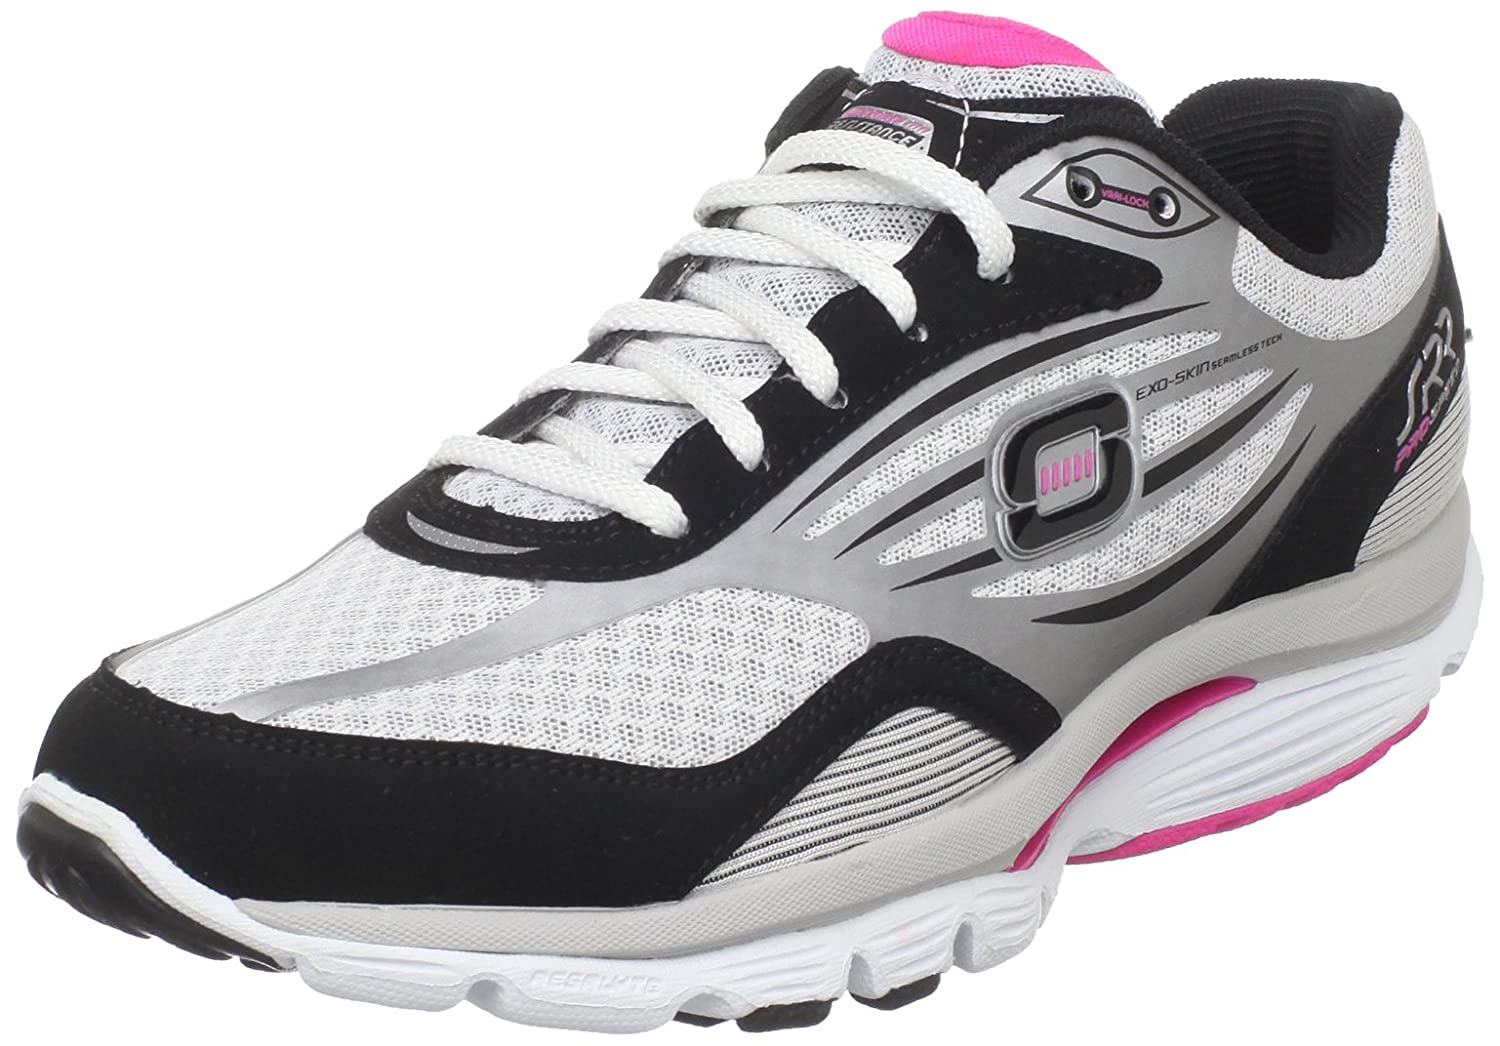 Skechers Womens Prospeed S R R BlackWhite: Amazon.co.uk